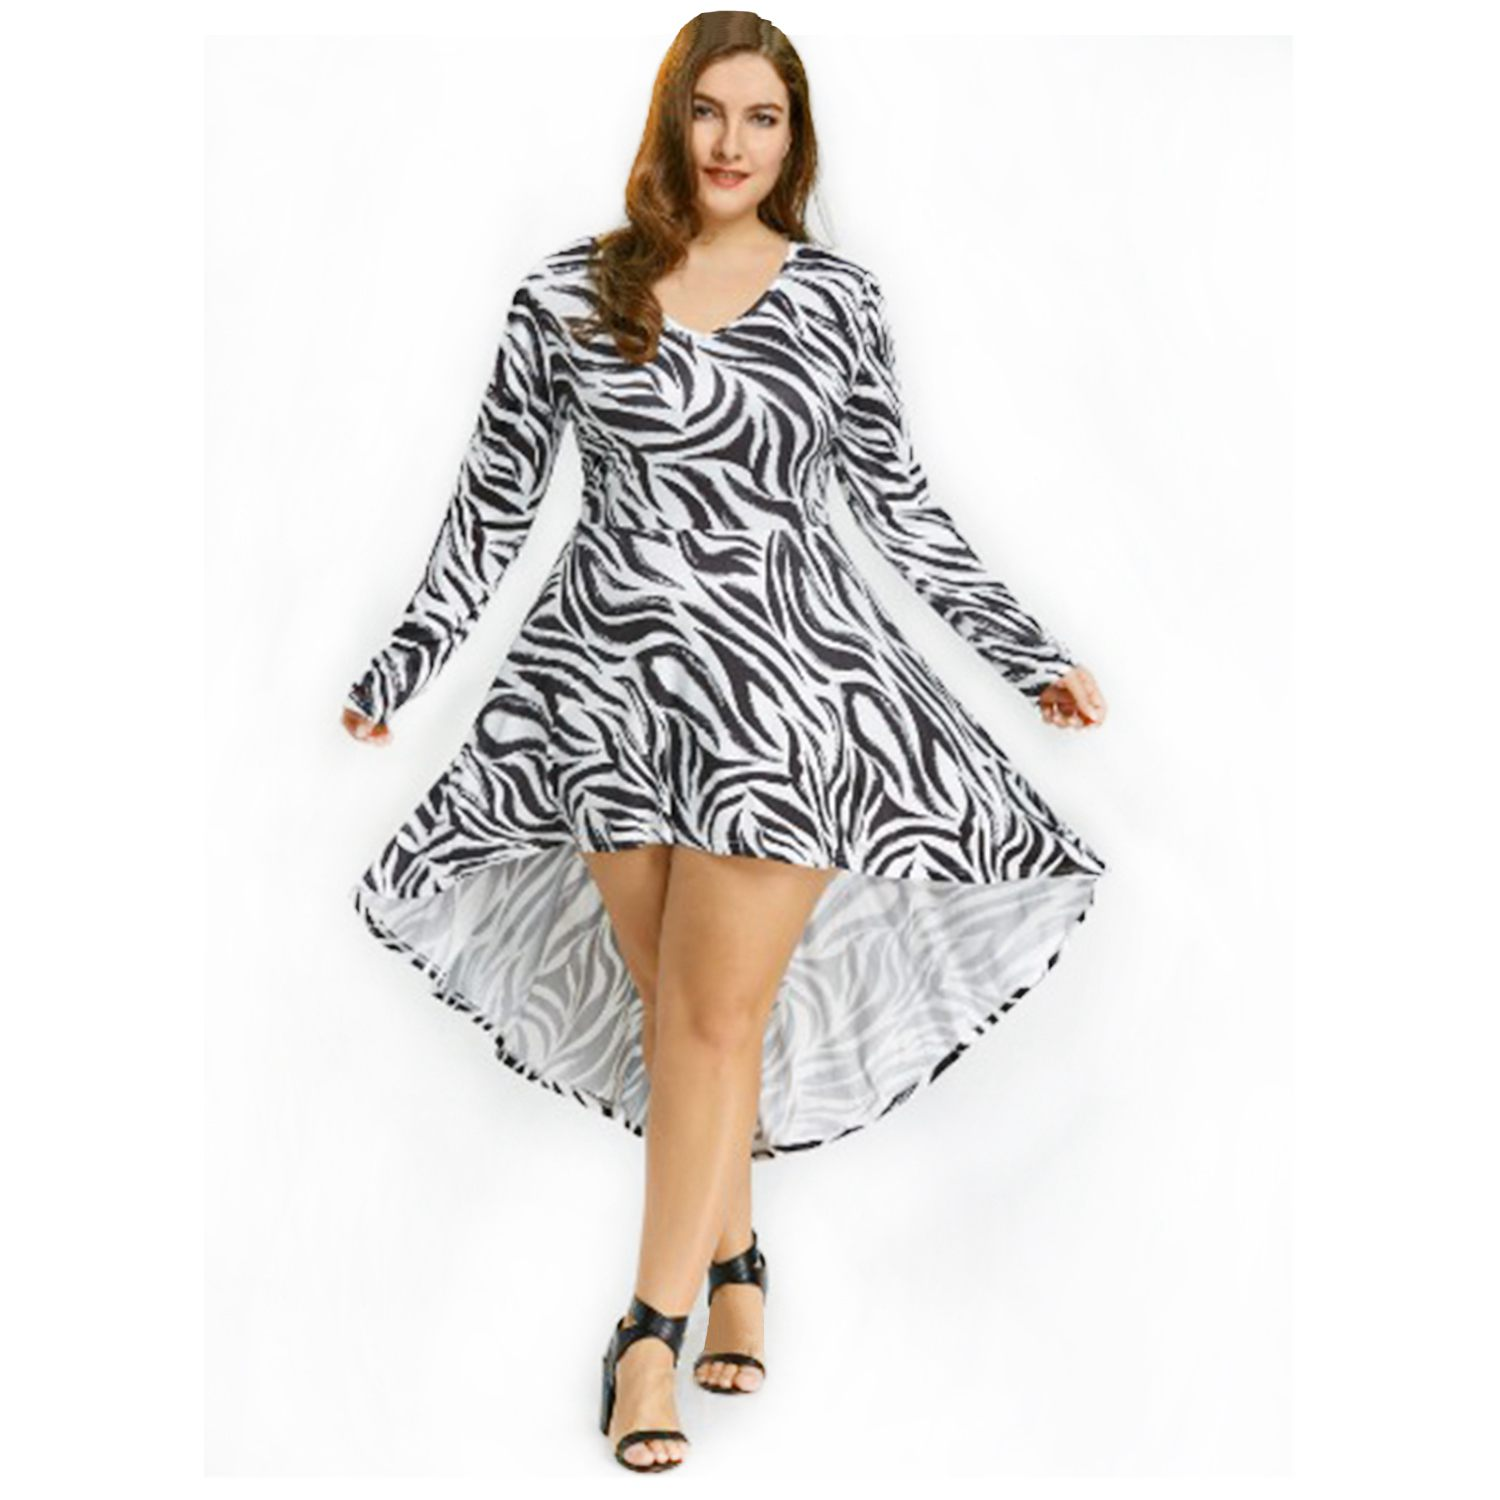 2018 hotsale spring autumn new fashion all-purpose elegant casual women lady dress long-sleeved zebra pattern ladies dress